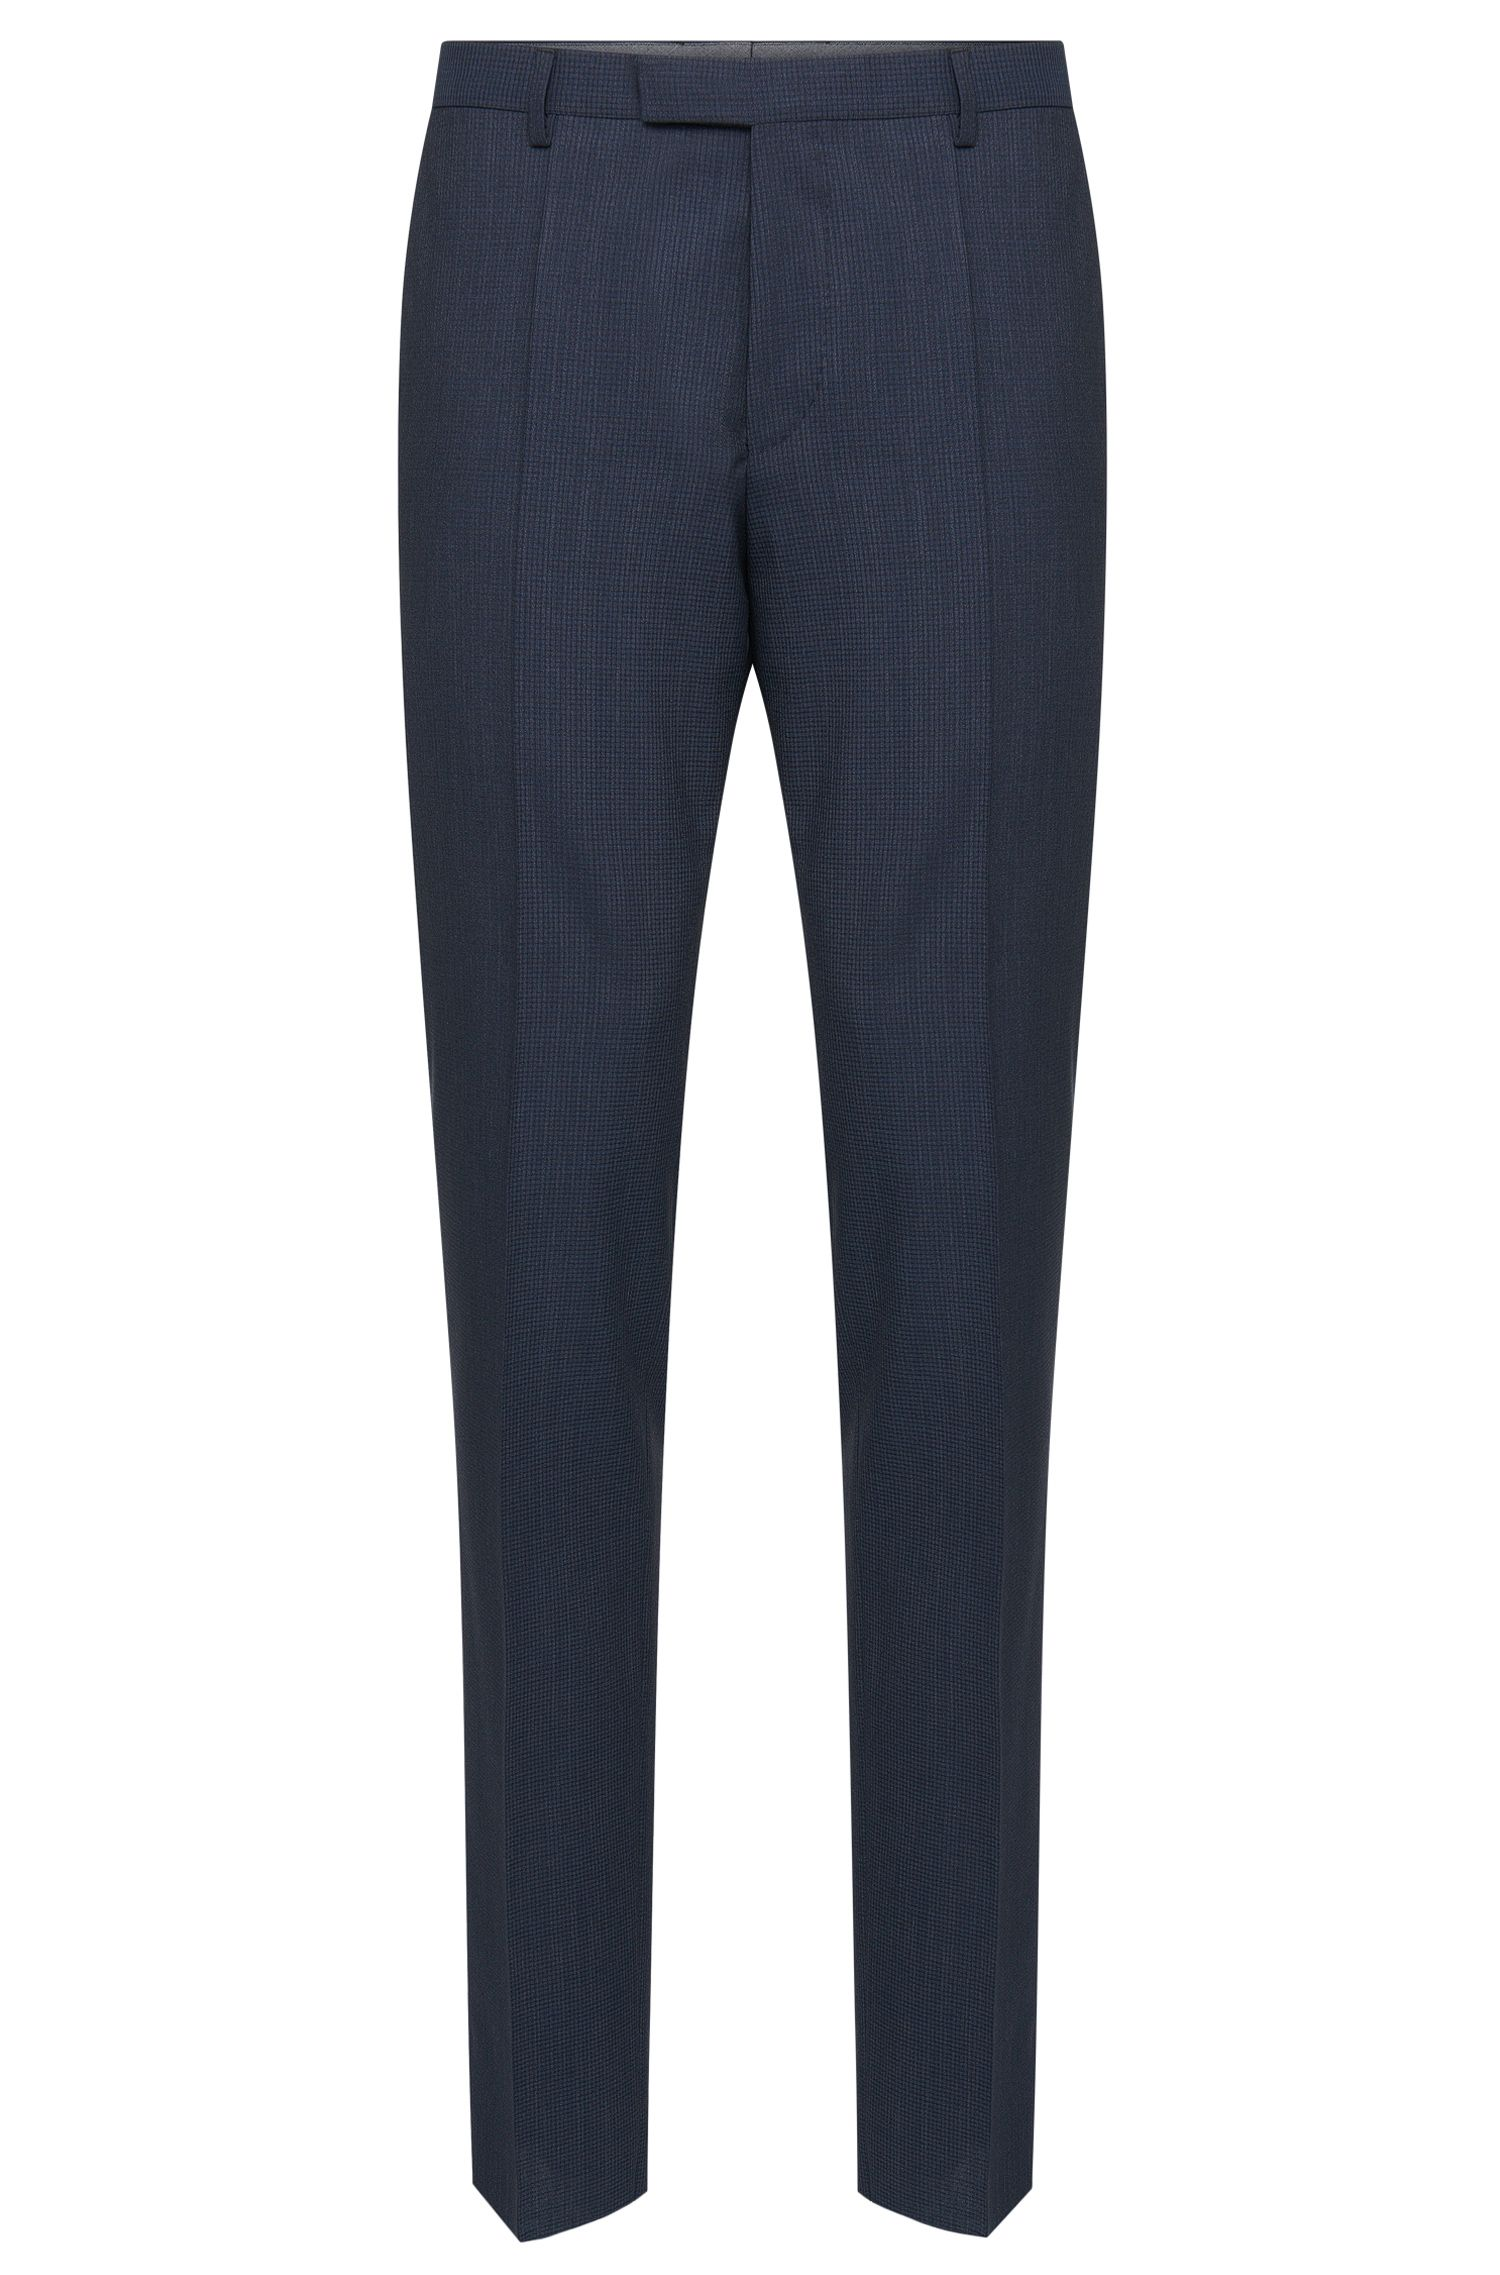 'Leenon' | Regular Fit, Super 100 Virgin Wool Check Dress Pants